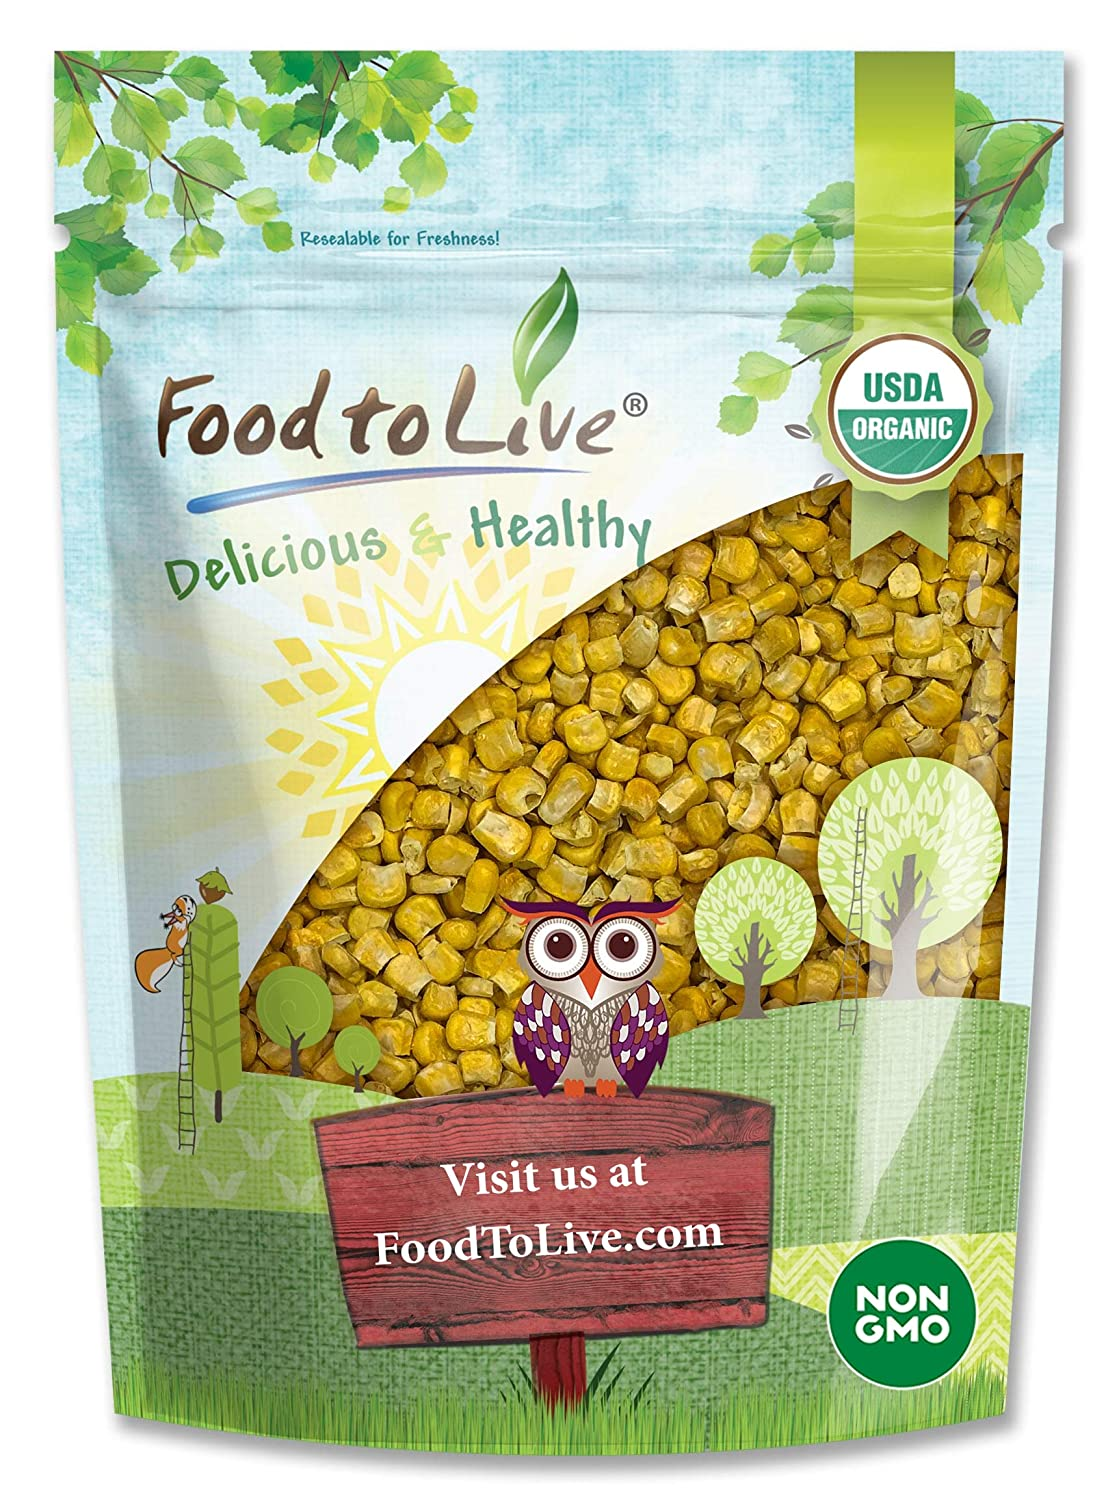 Organic Super Sweet Corn, 8 Ounces - Freeze-Dried Kernels, Non-GMO, Kosher, Raw, Healthy Snack, Bulk, Grown in the USA